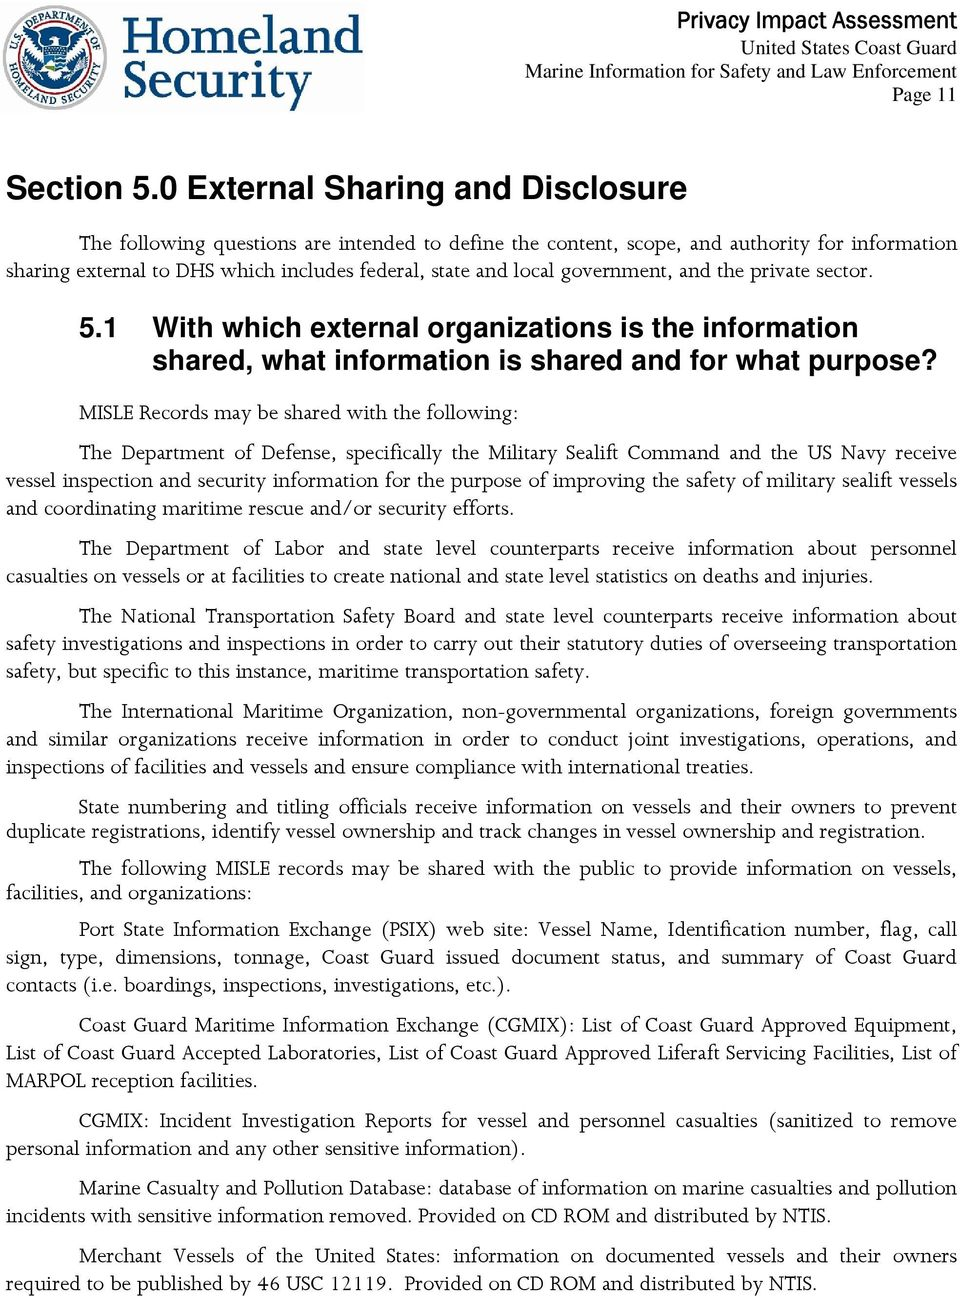 government, and the private sector. 5.1 With which external organizations is the information shared, what information is shared and for what purpose?